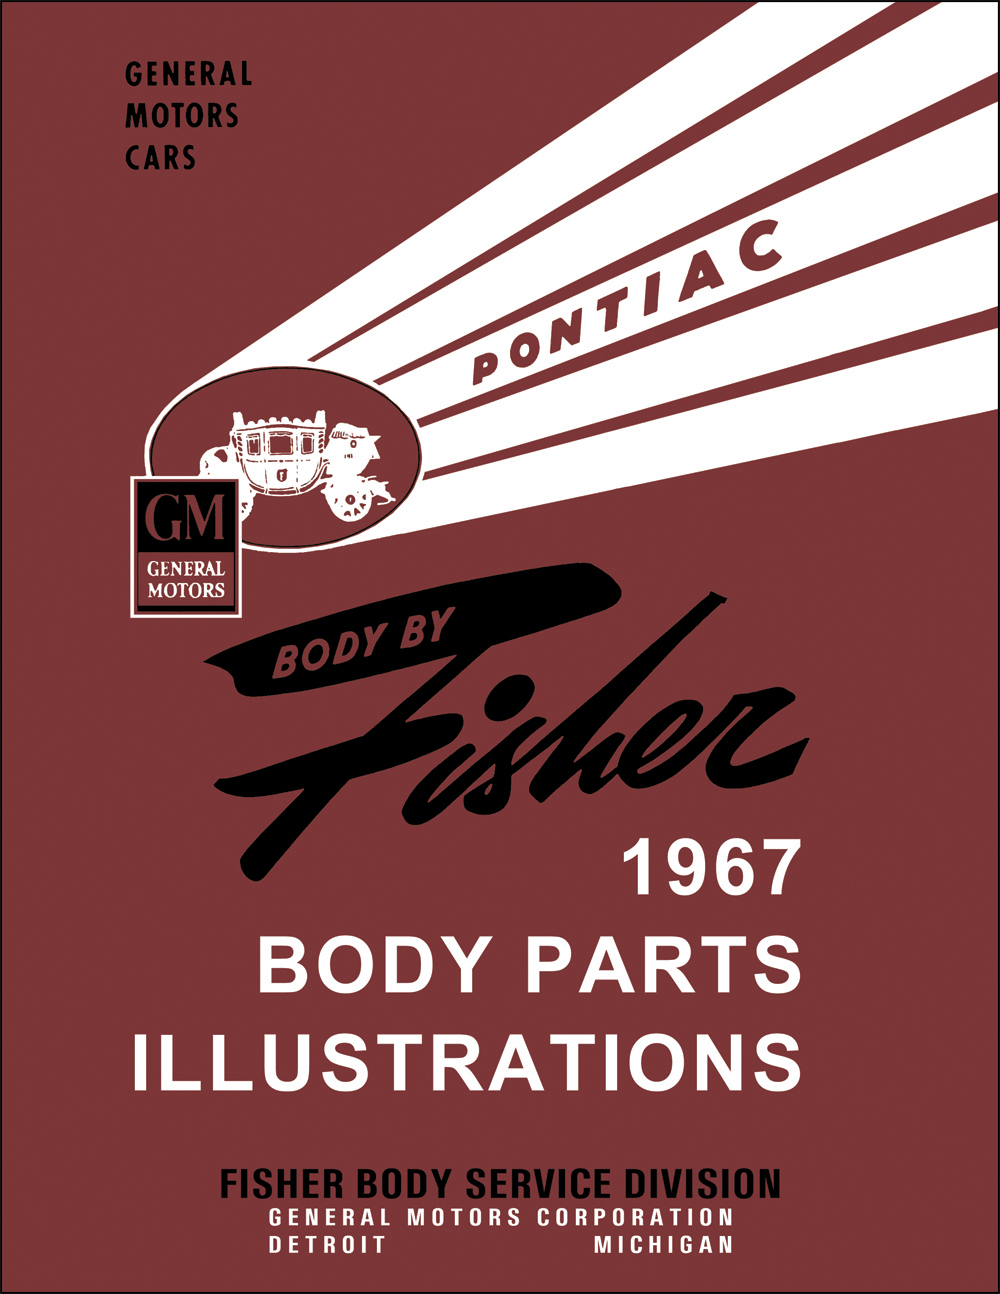 1967 Pontiac Fisher Body Parts Illustrations Manual Reprint